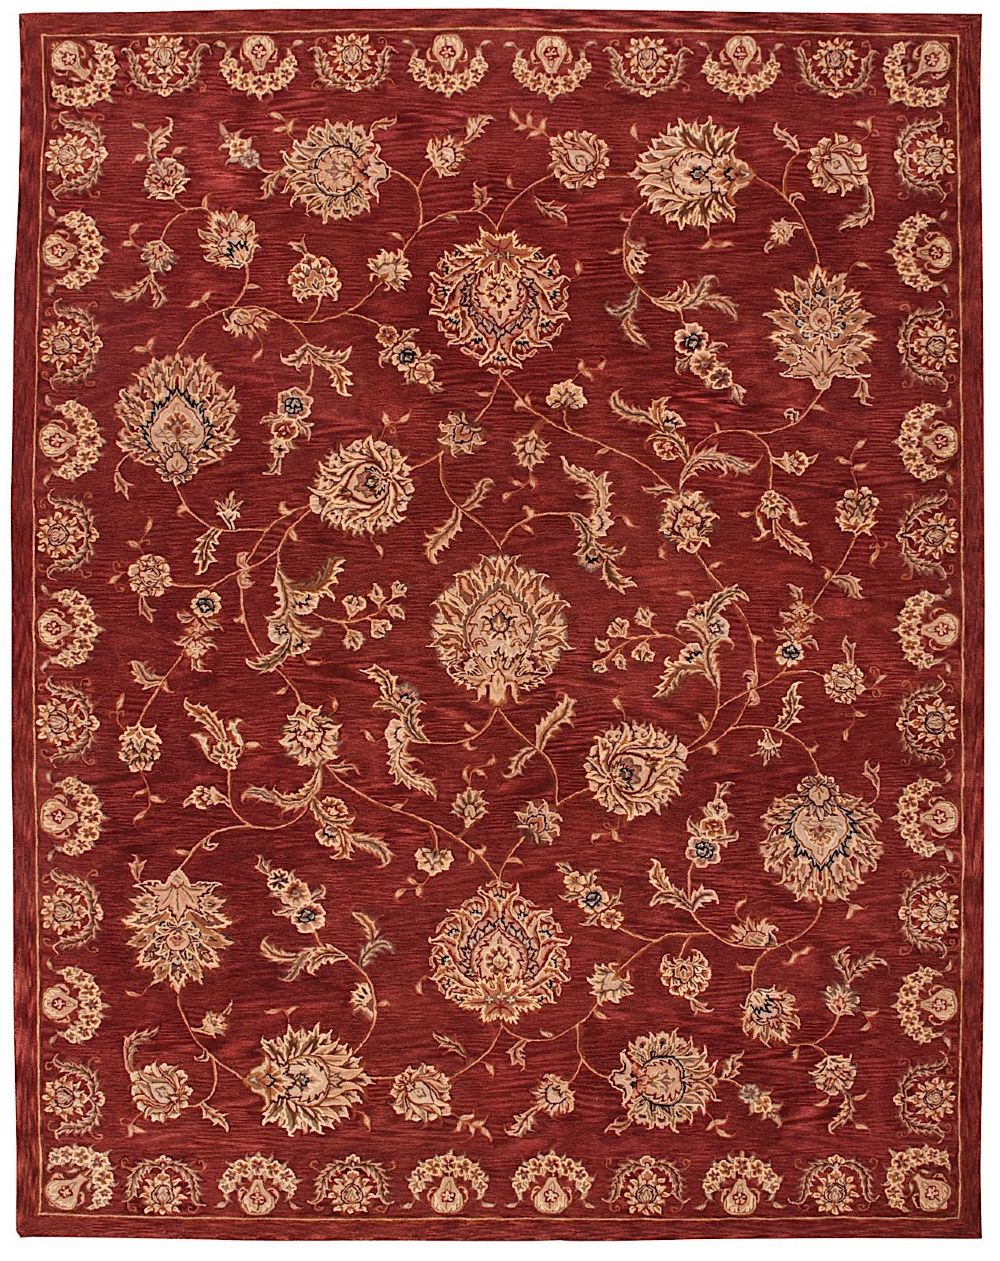 nourison nourison 2000 country & floral area rug collection